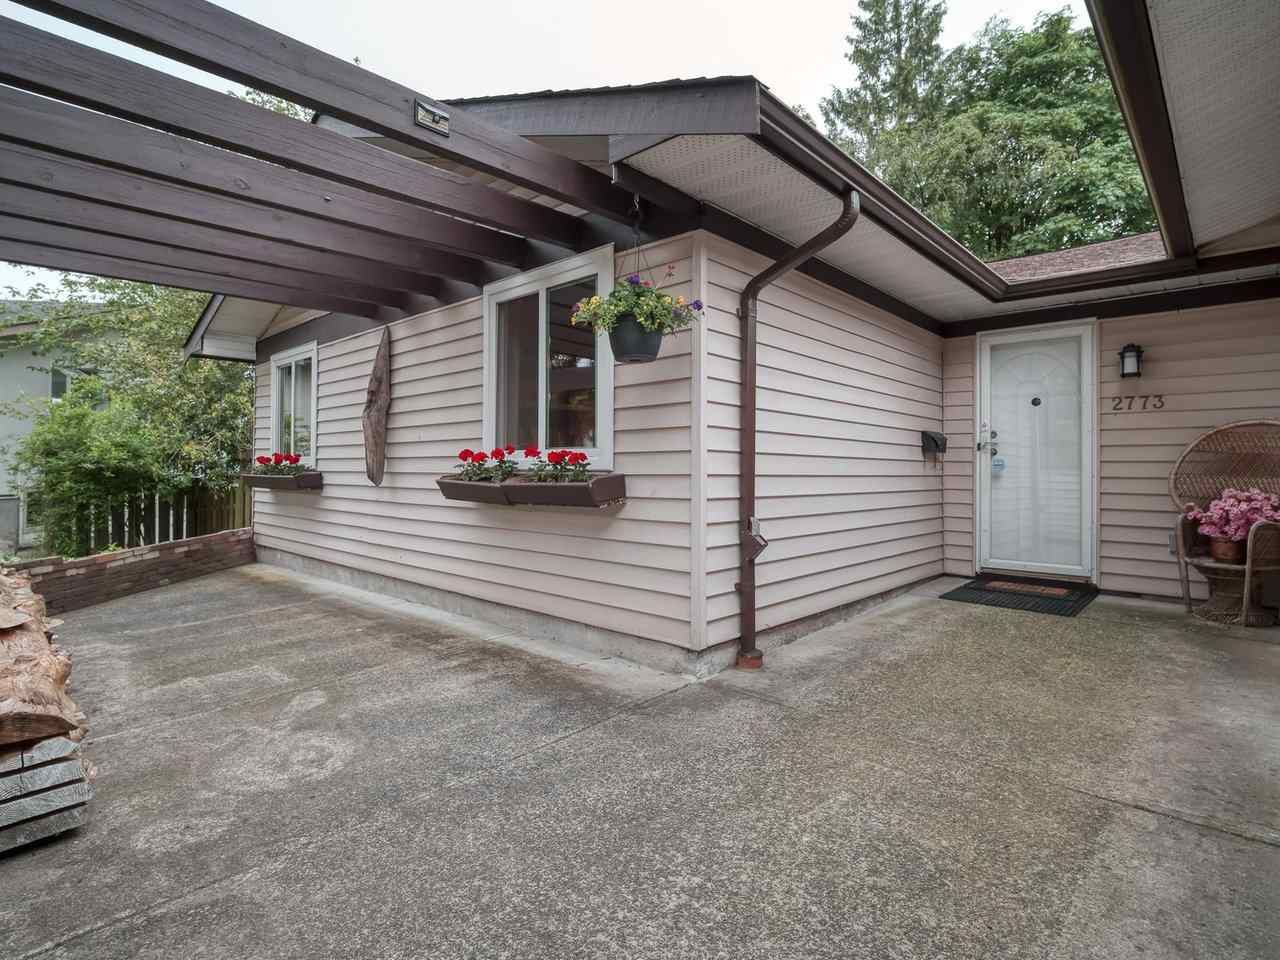 Photo 3: Photos: 2773 DAYBREAK Avenue in Coquitlam: Ranch Park House for sale : MLS®# R2457912